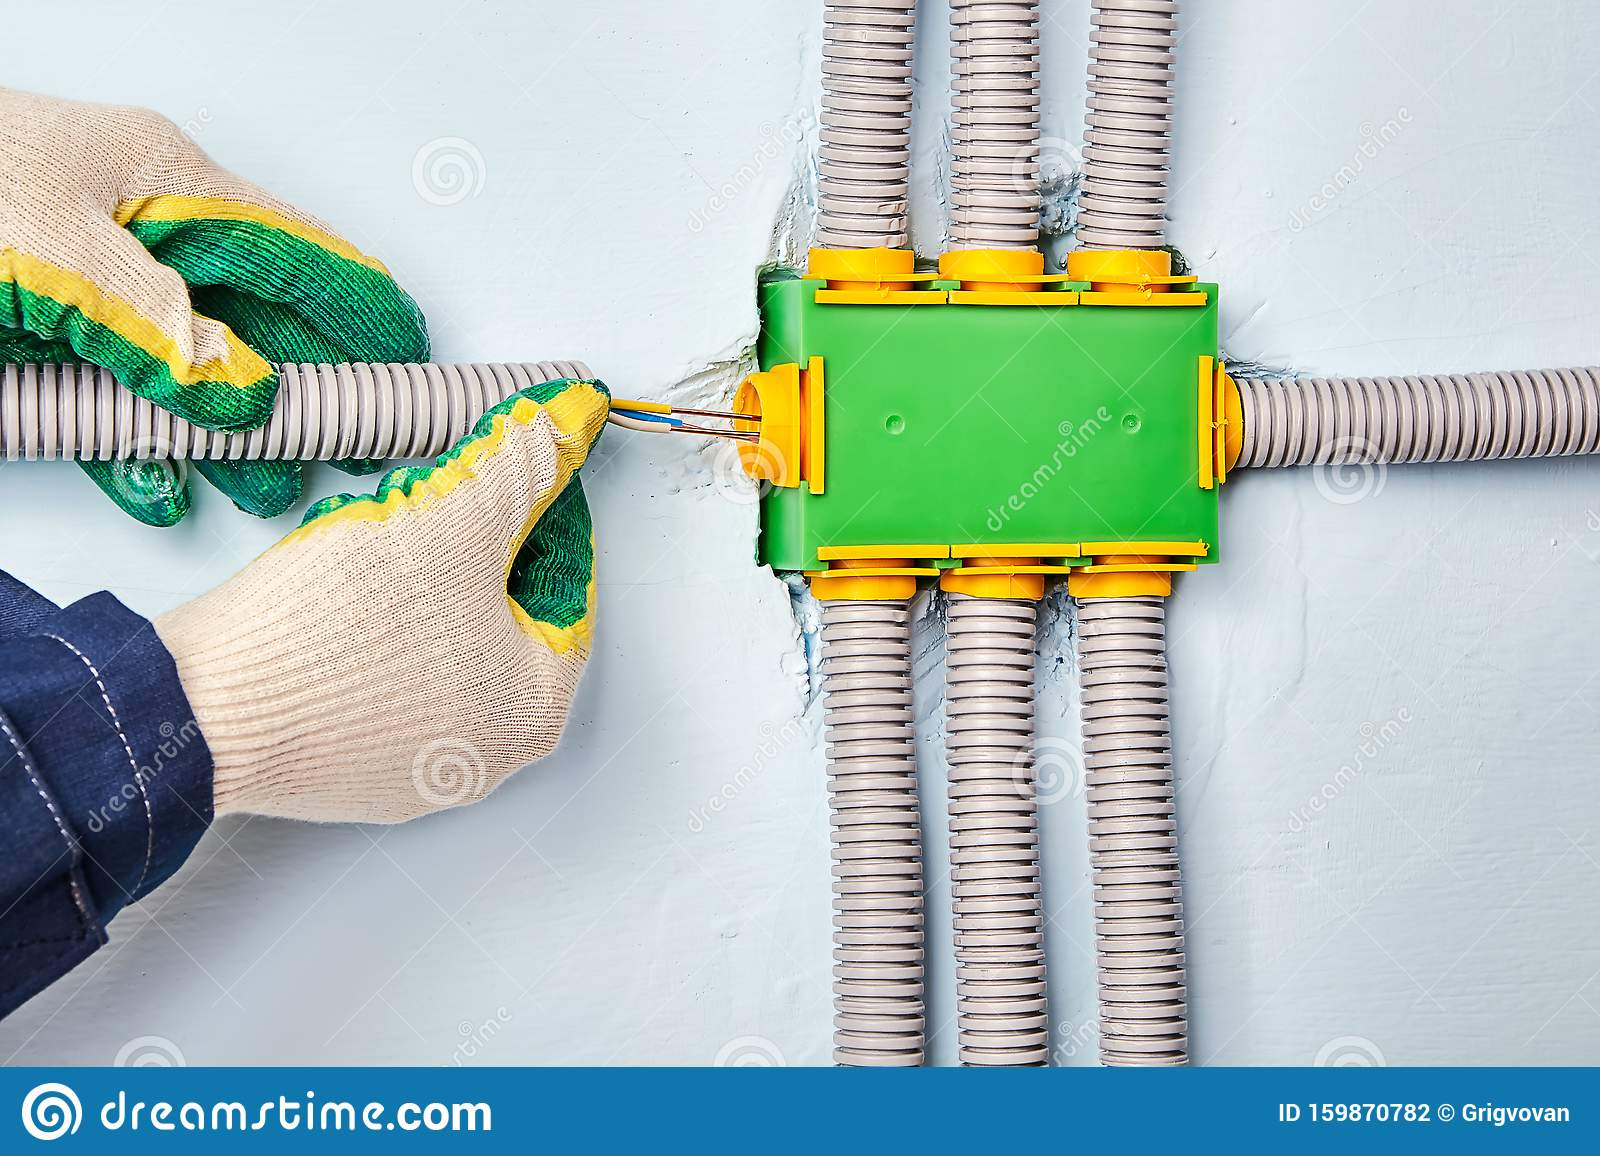 An Electrician Is Wires In Electrical Junction Box Stock Photo Image Of Install Electrical 159870782